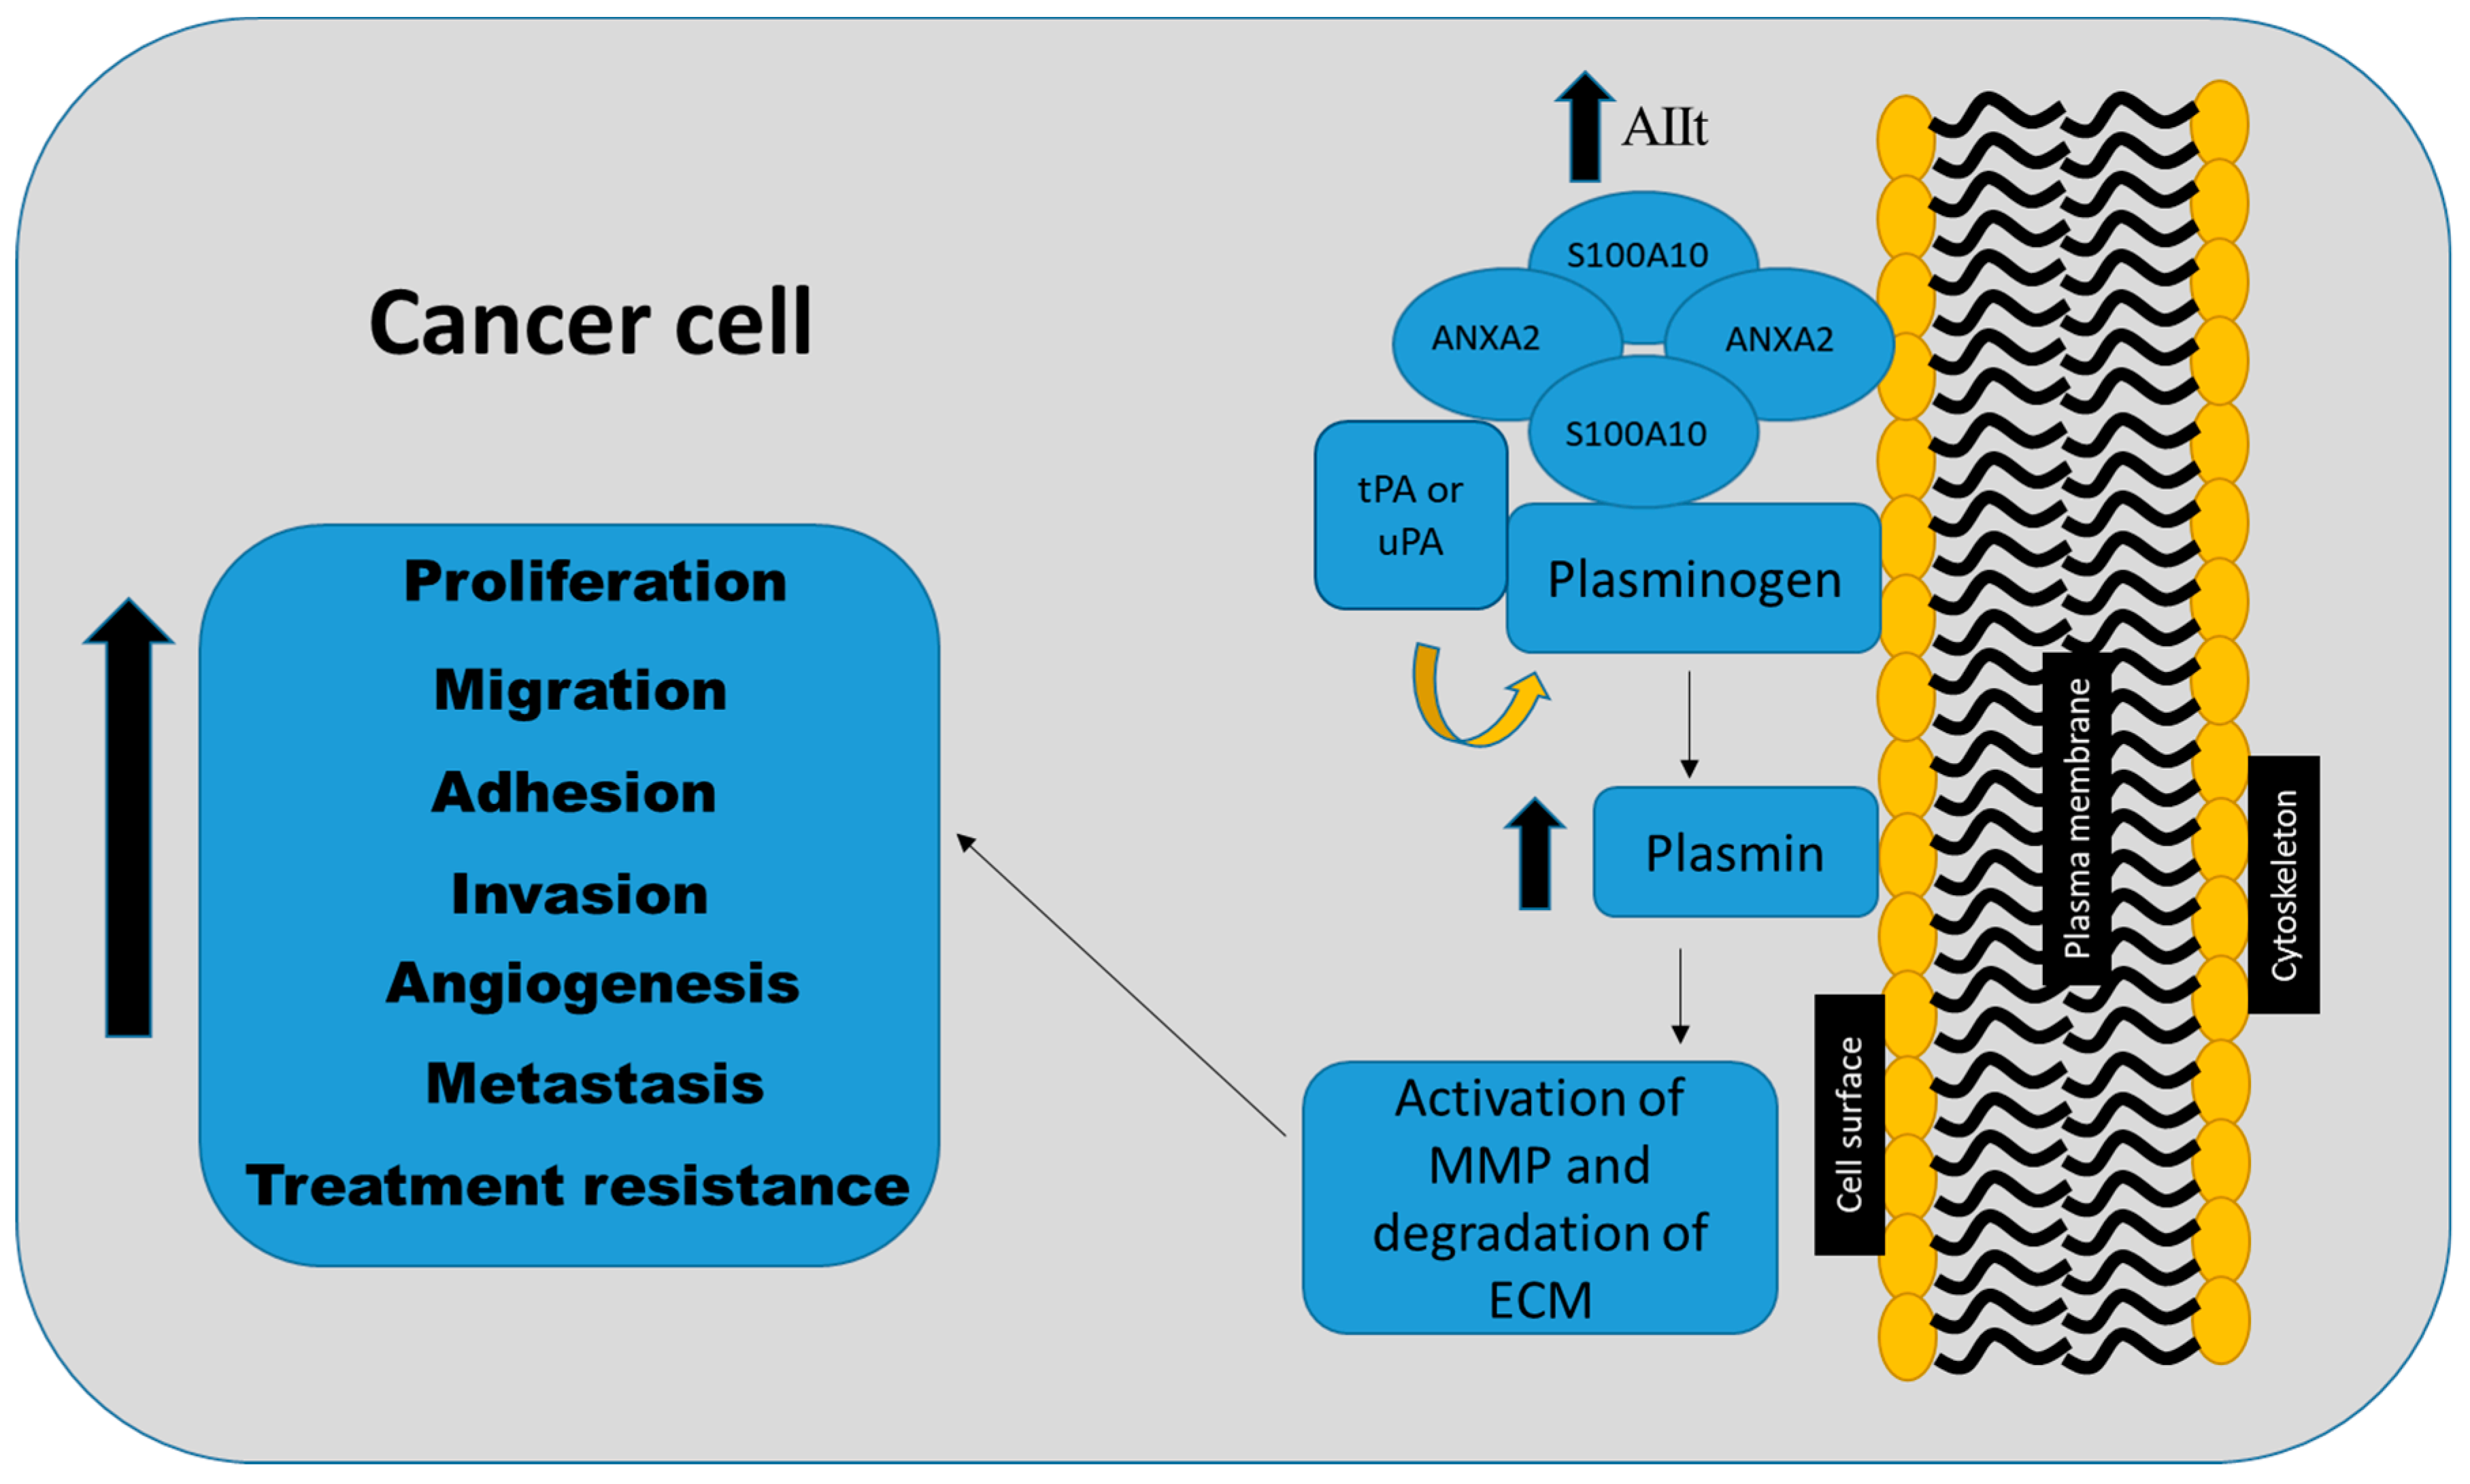 IJMS | Free Full-Text | S100A10 and Cancer Hallmarks